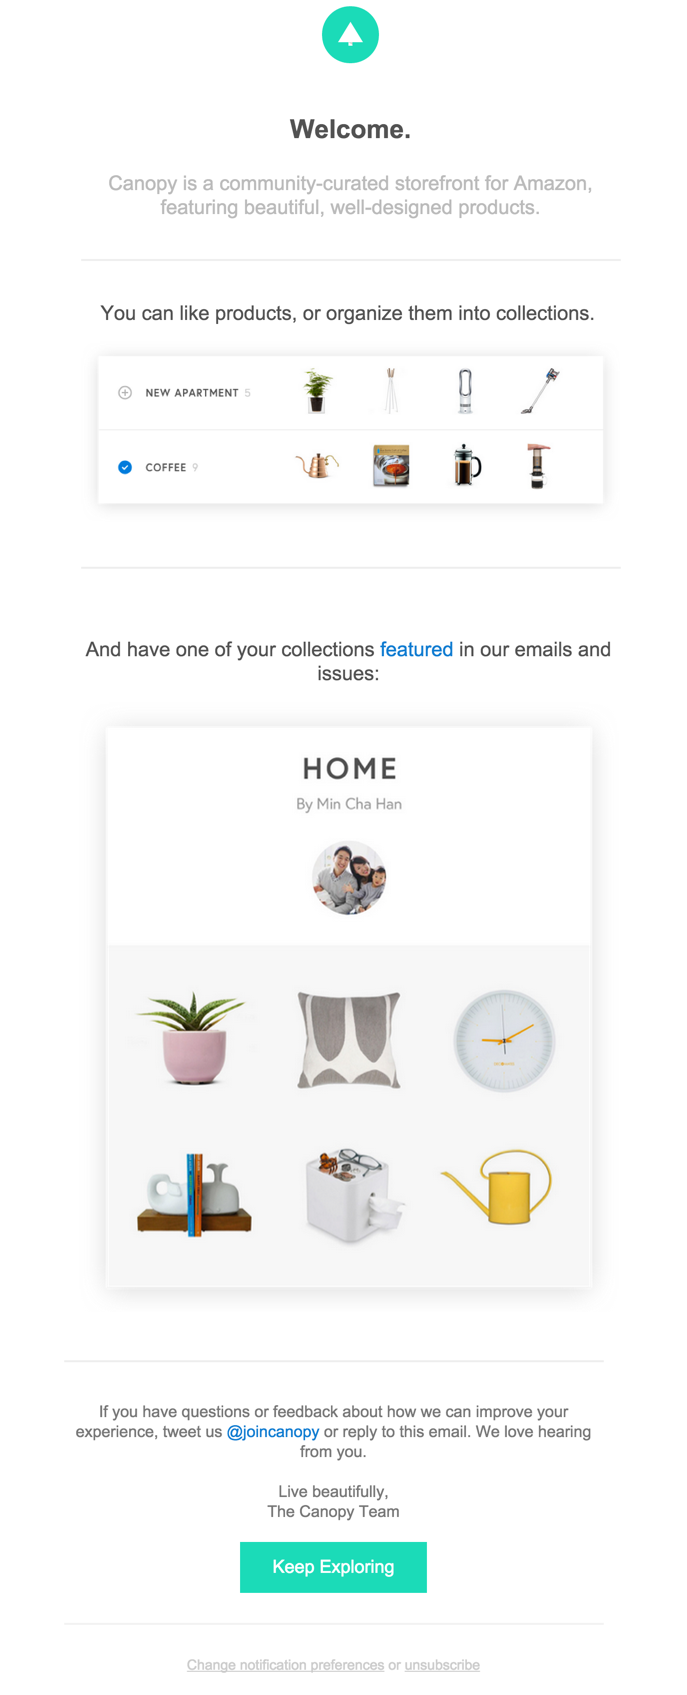 canopy-welcome-email